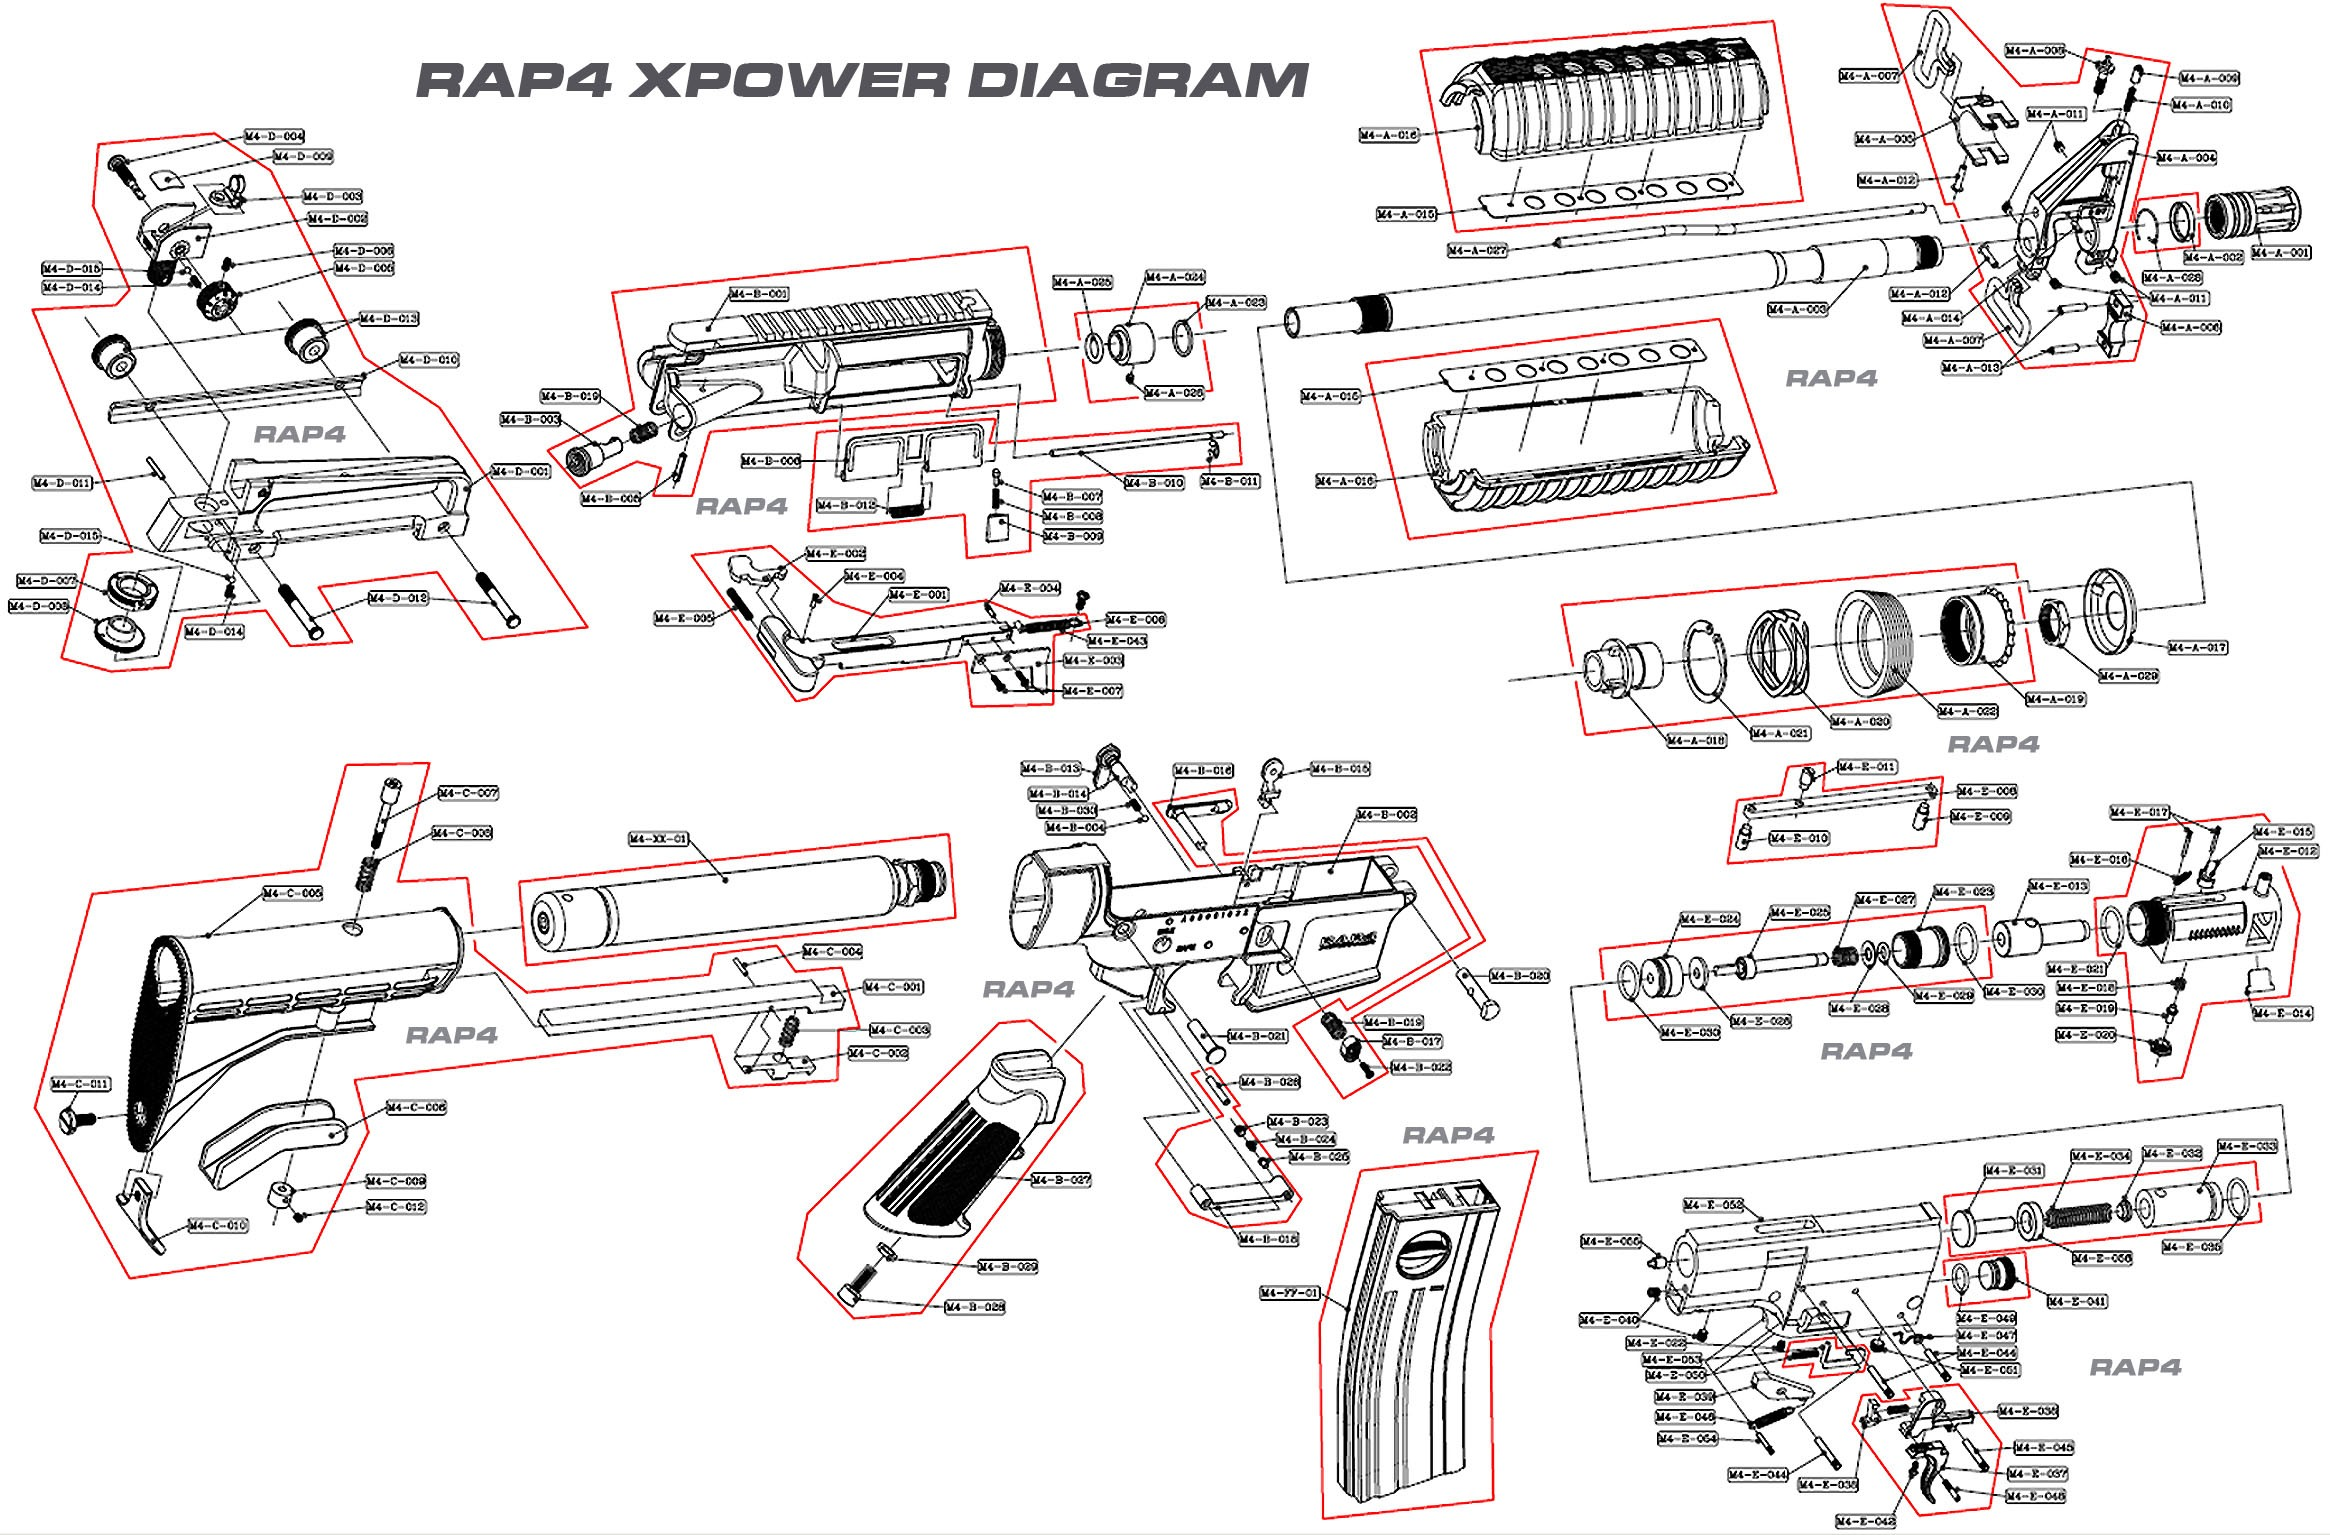 Car Body Part Diagram M4 Carbine Schematic Military Pinterest Of Car Body Part Diagram